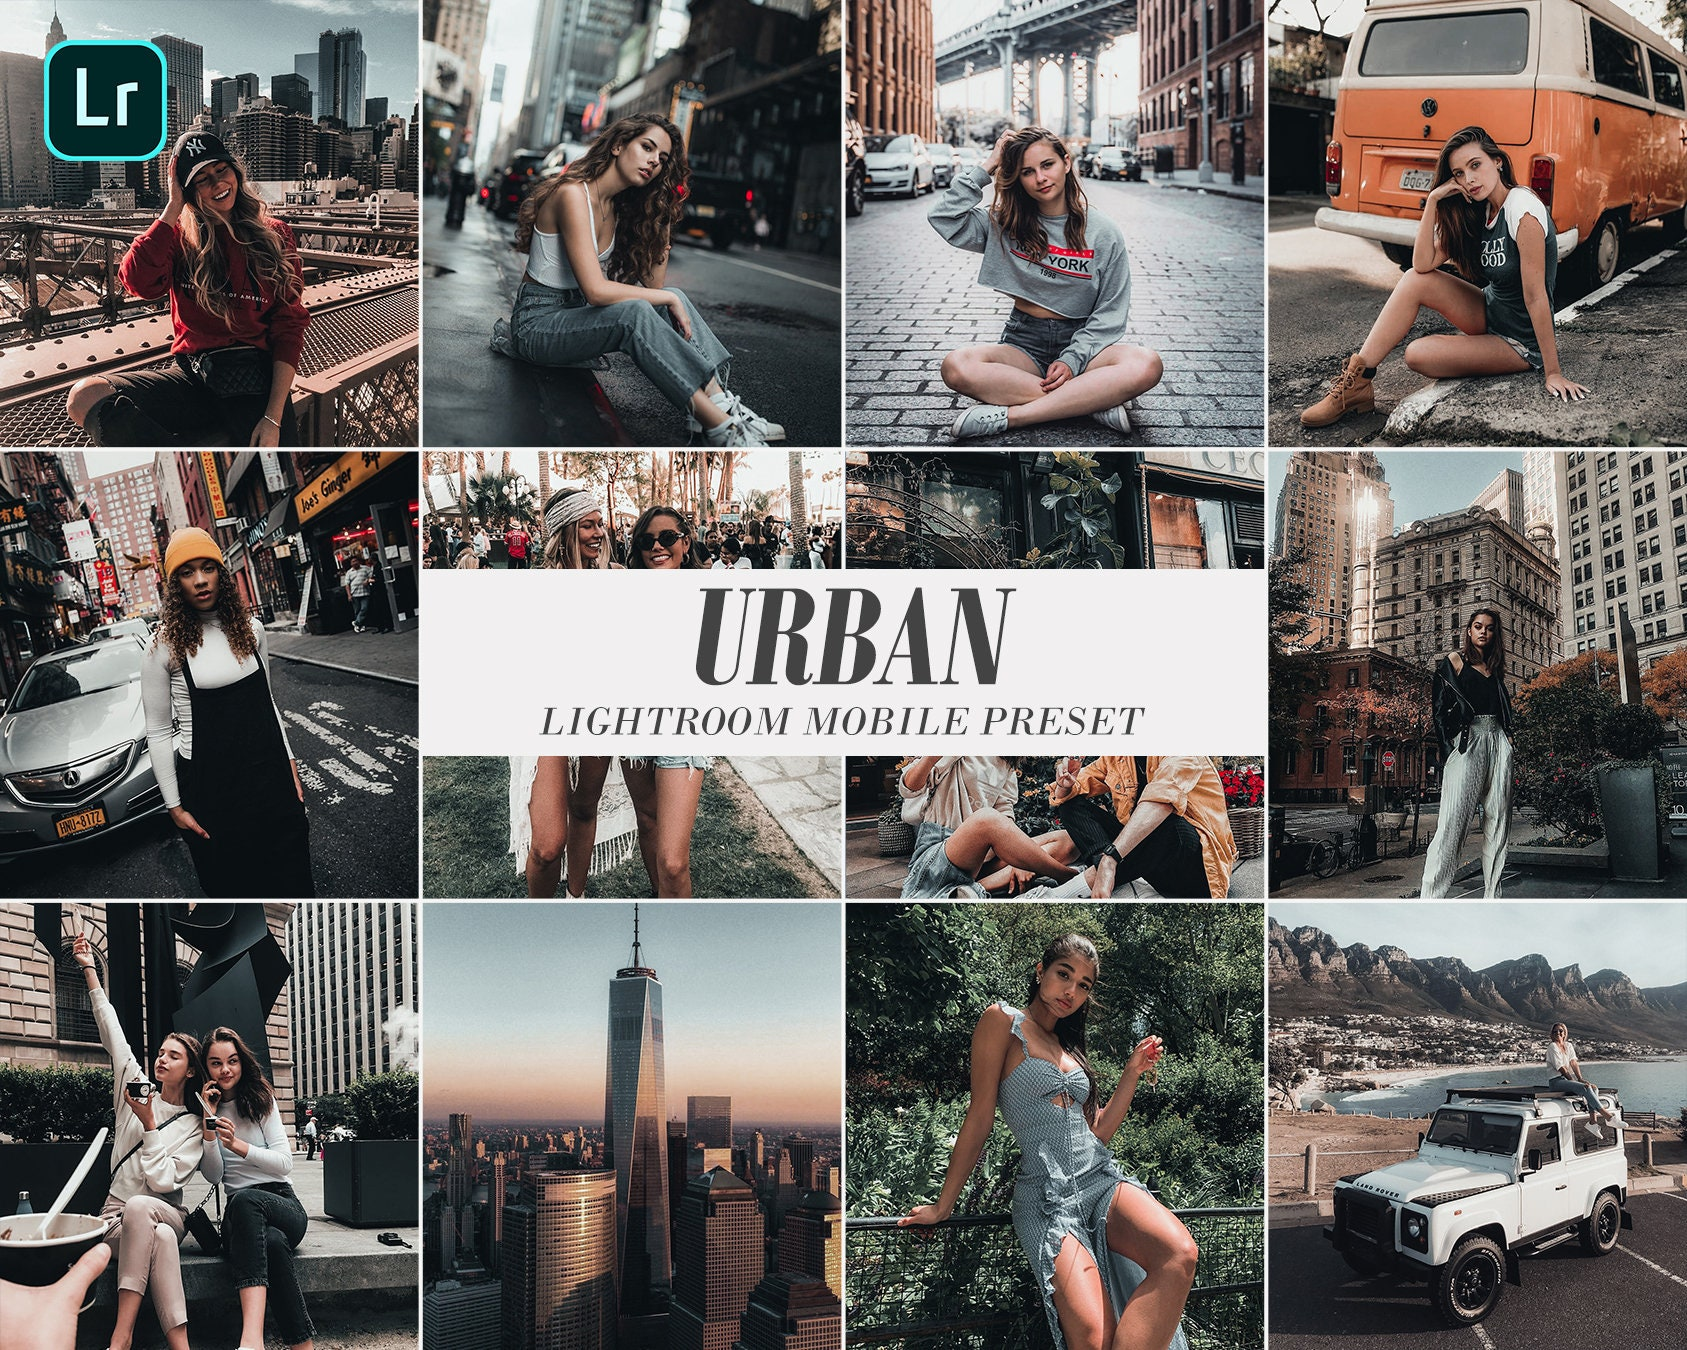 2 Mobile Lightroom Preset URBAN for Instagram Blogger Lifestyle Influencer  Trendy Travel